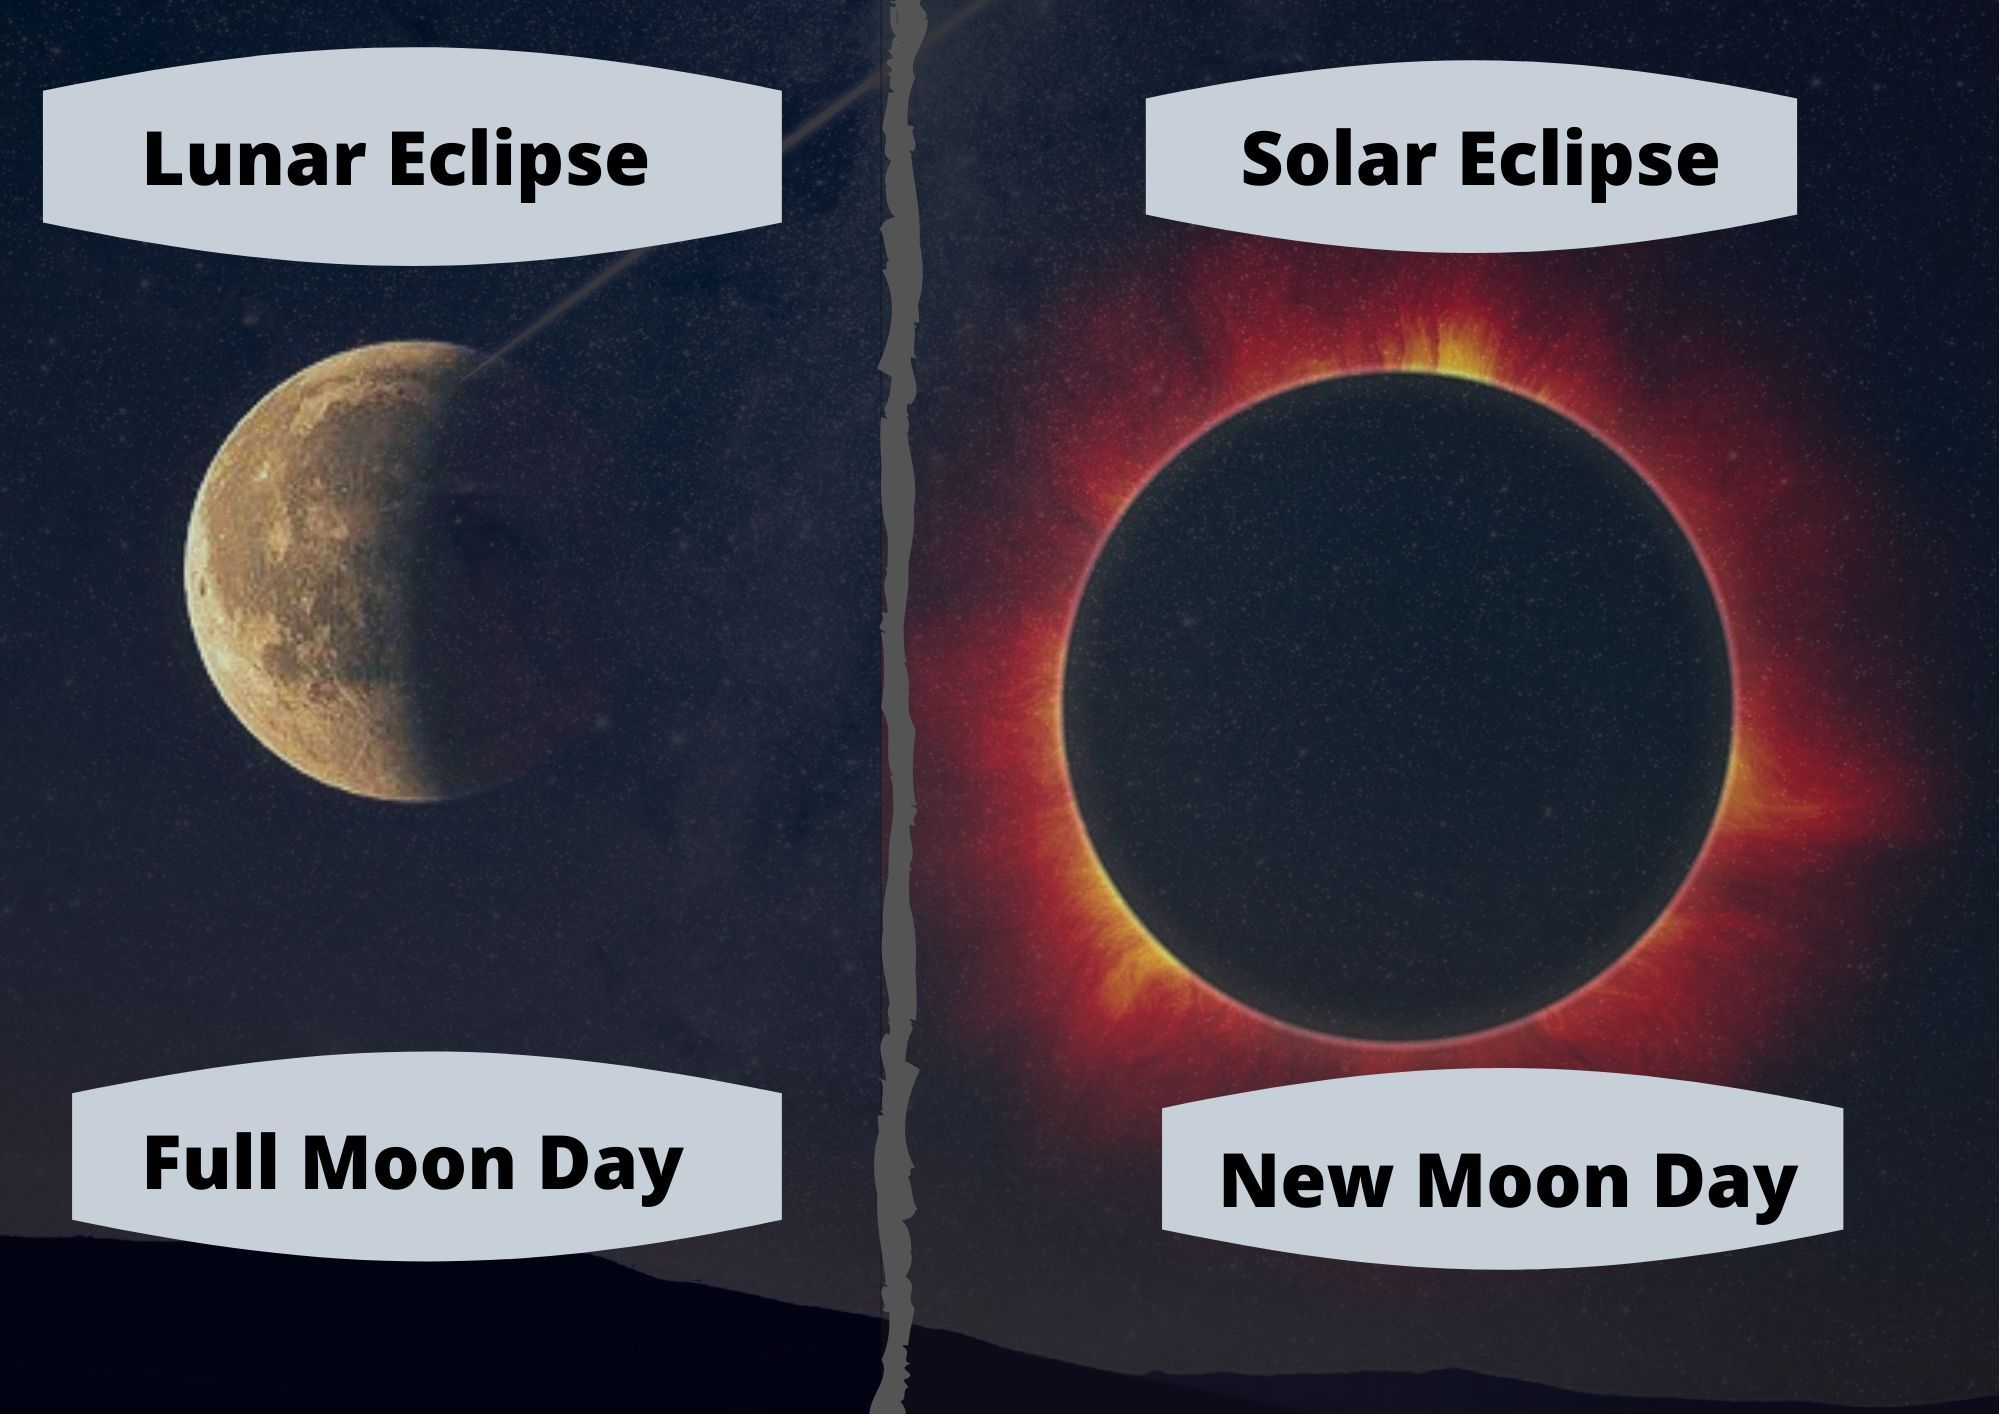 A Solar Eclipse Can Only Occur On The New Moon Day Whereas Lunar